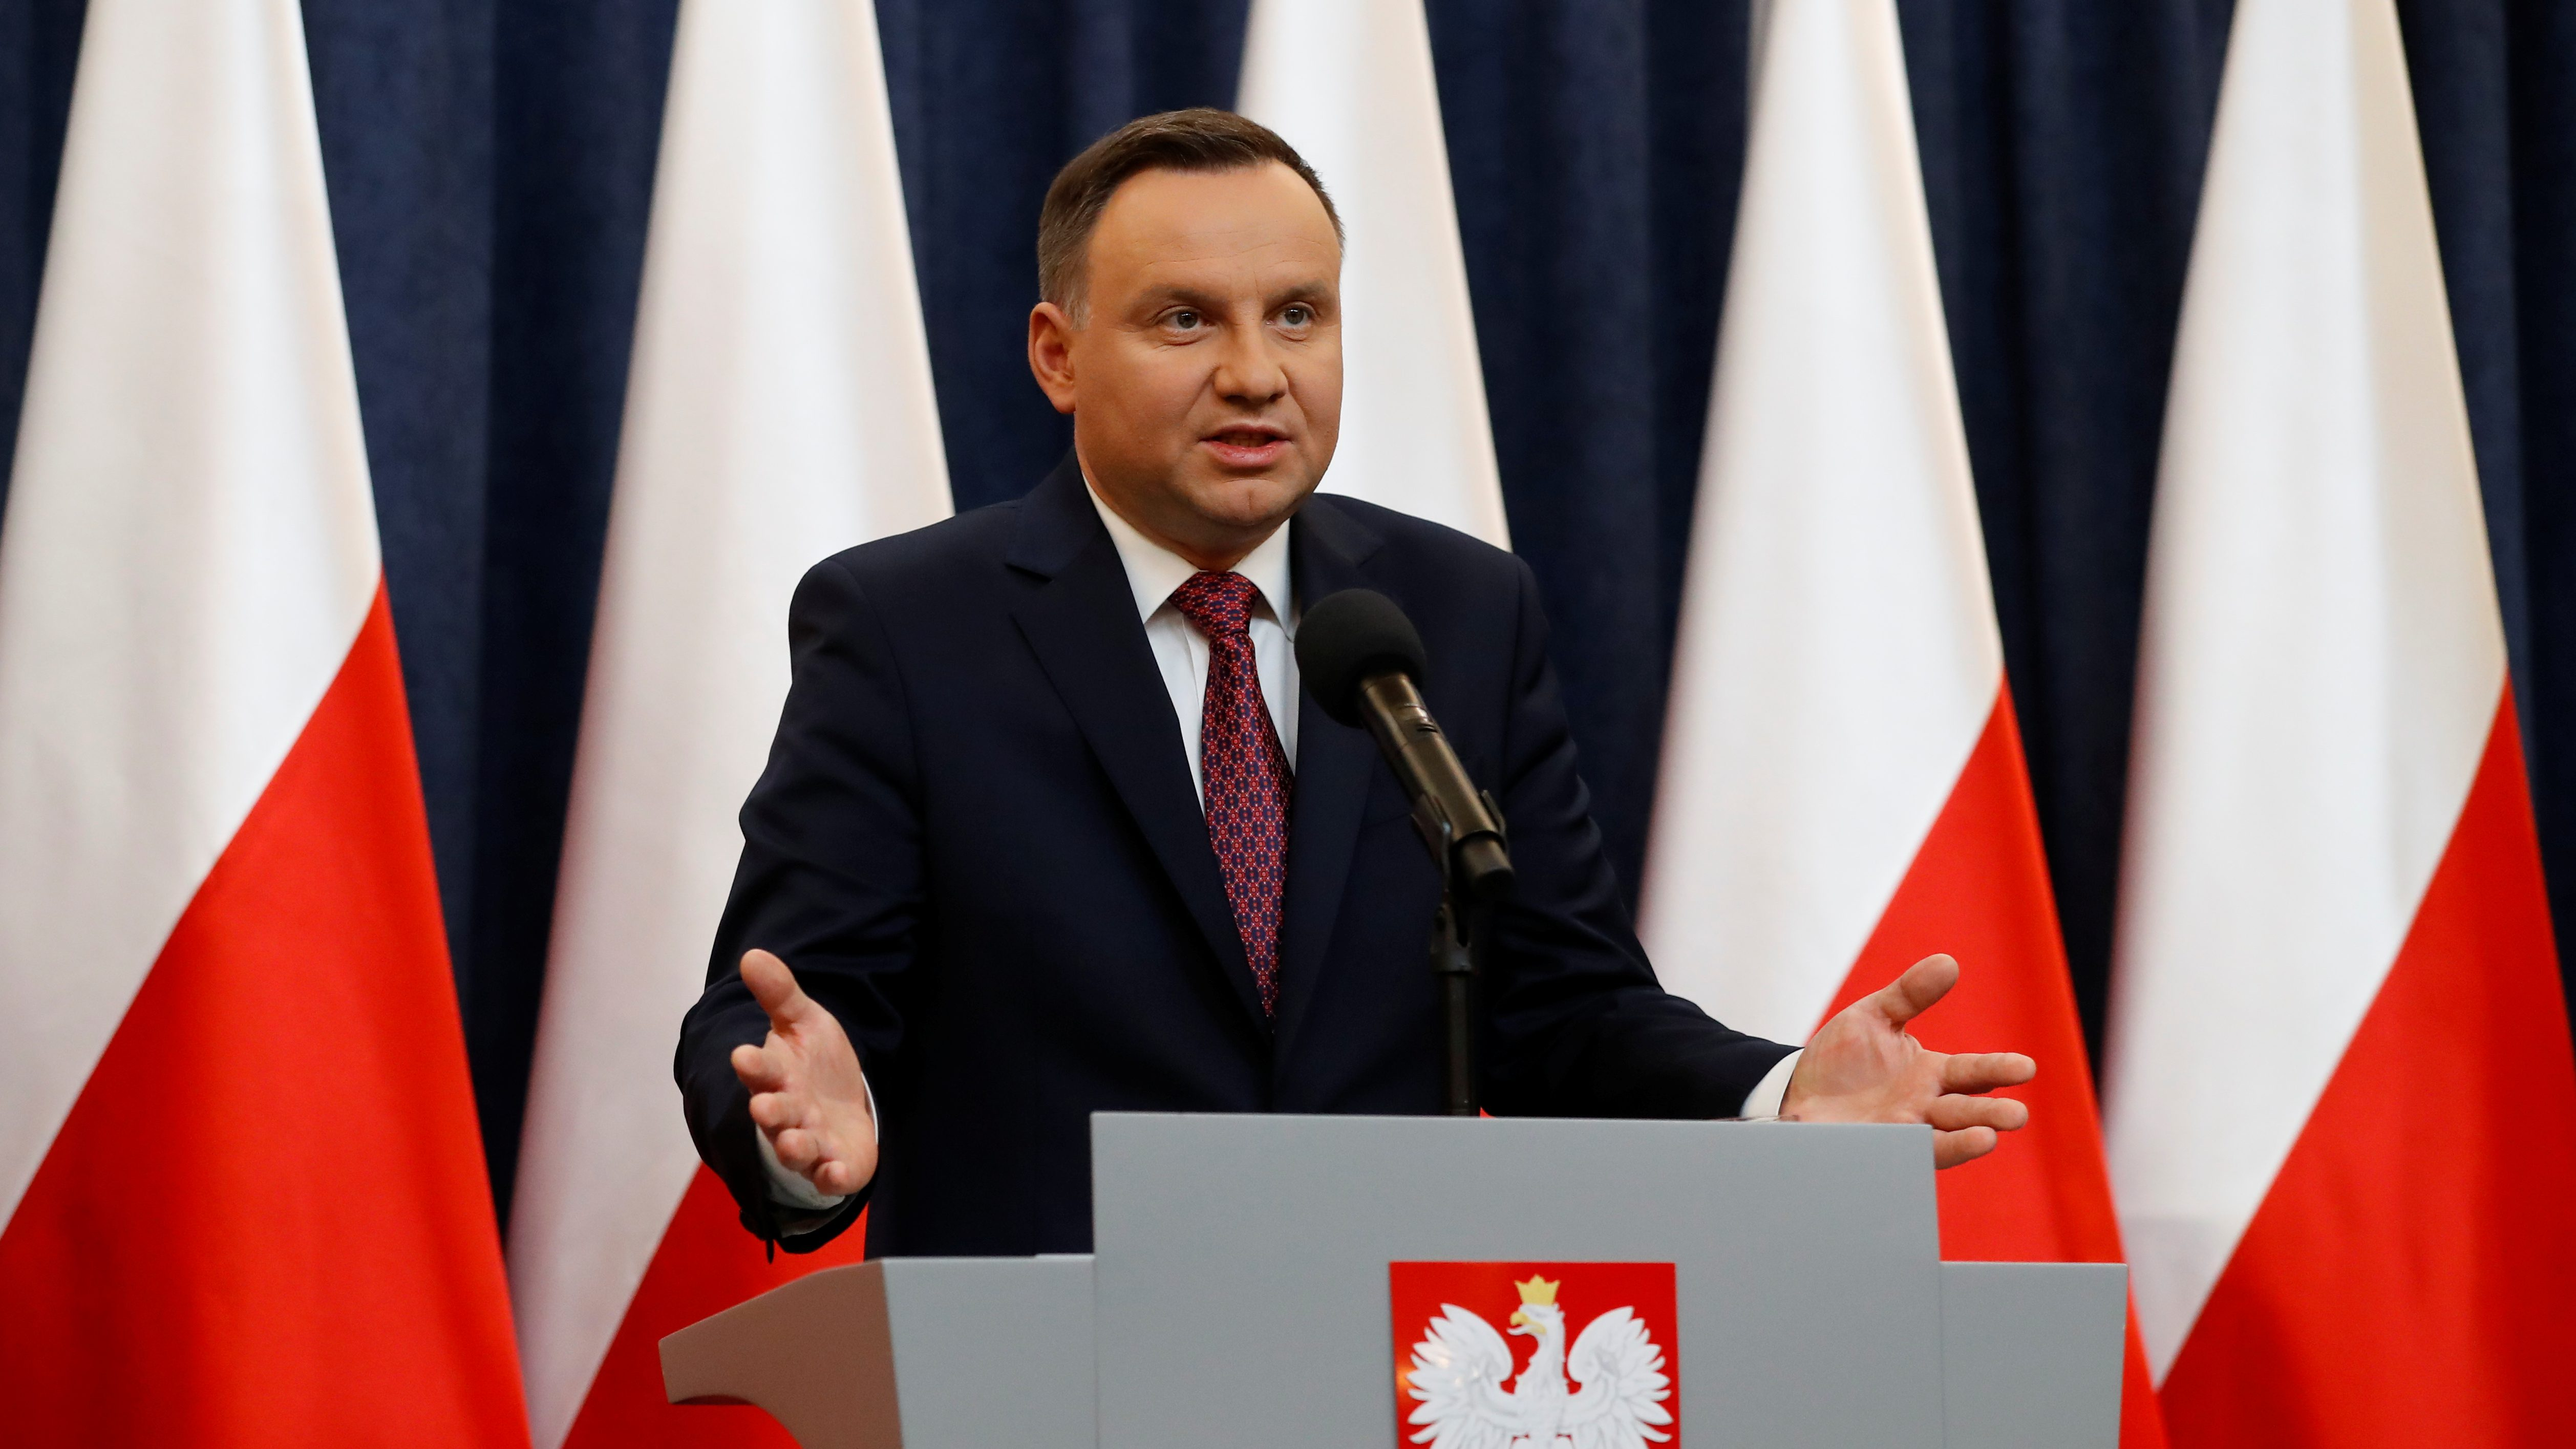 Poland's President Andrzej Duda speaks during a news conference, after the European Commission announced its decision to launch Article 7 procedure, at the Presidential Palace in Warsaw, Poland December 20, 2017. REUTERS/Kacper Pempel - RC1618514560